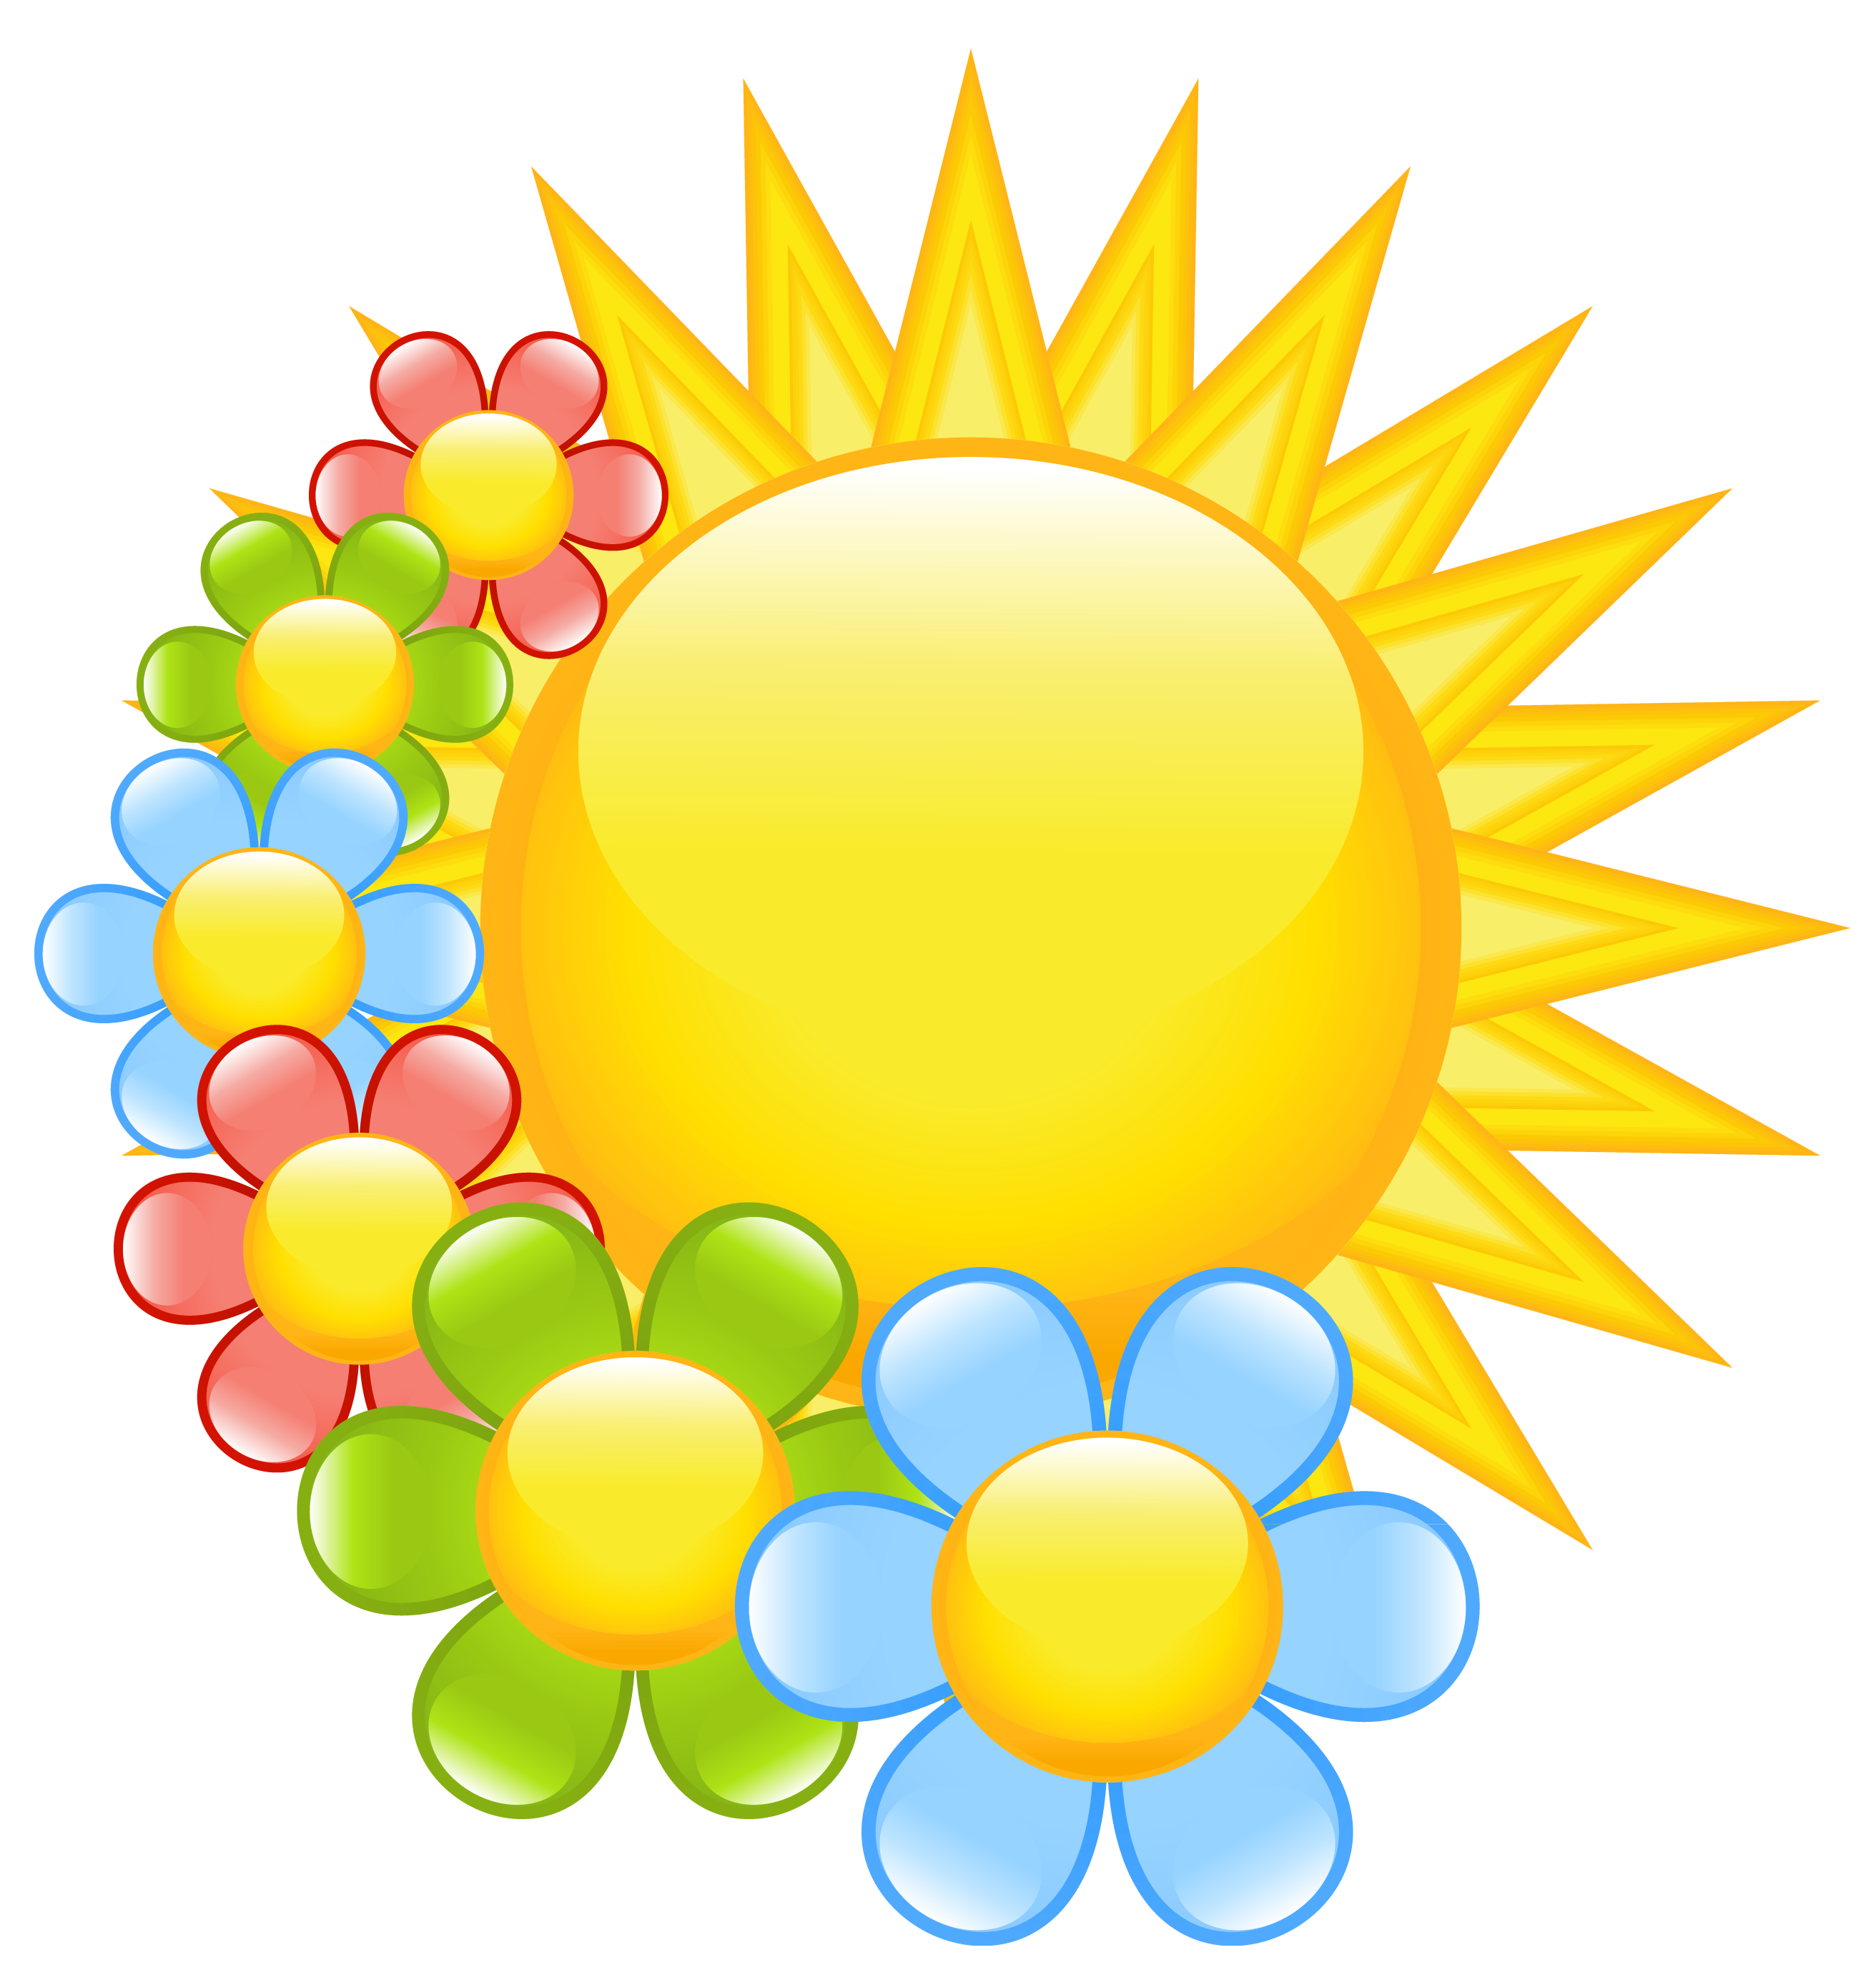 Sun with flowers gallery. Raindrop clipart spring